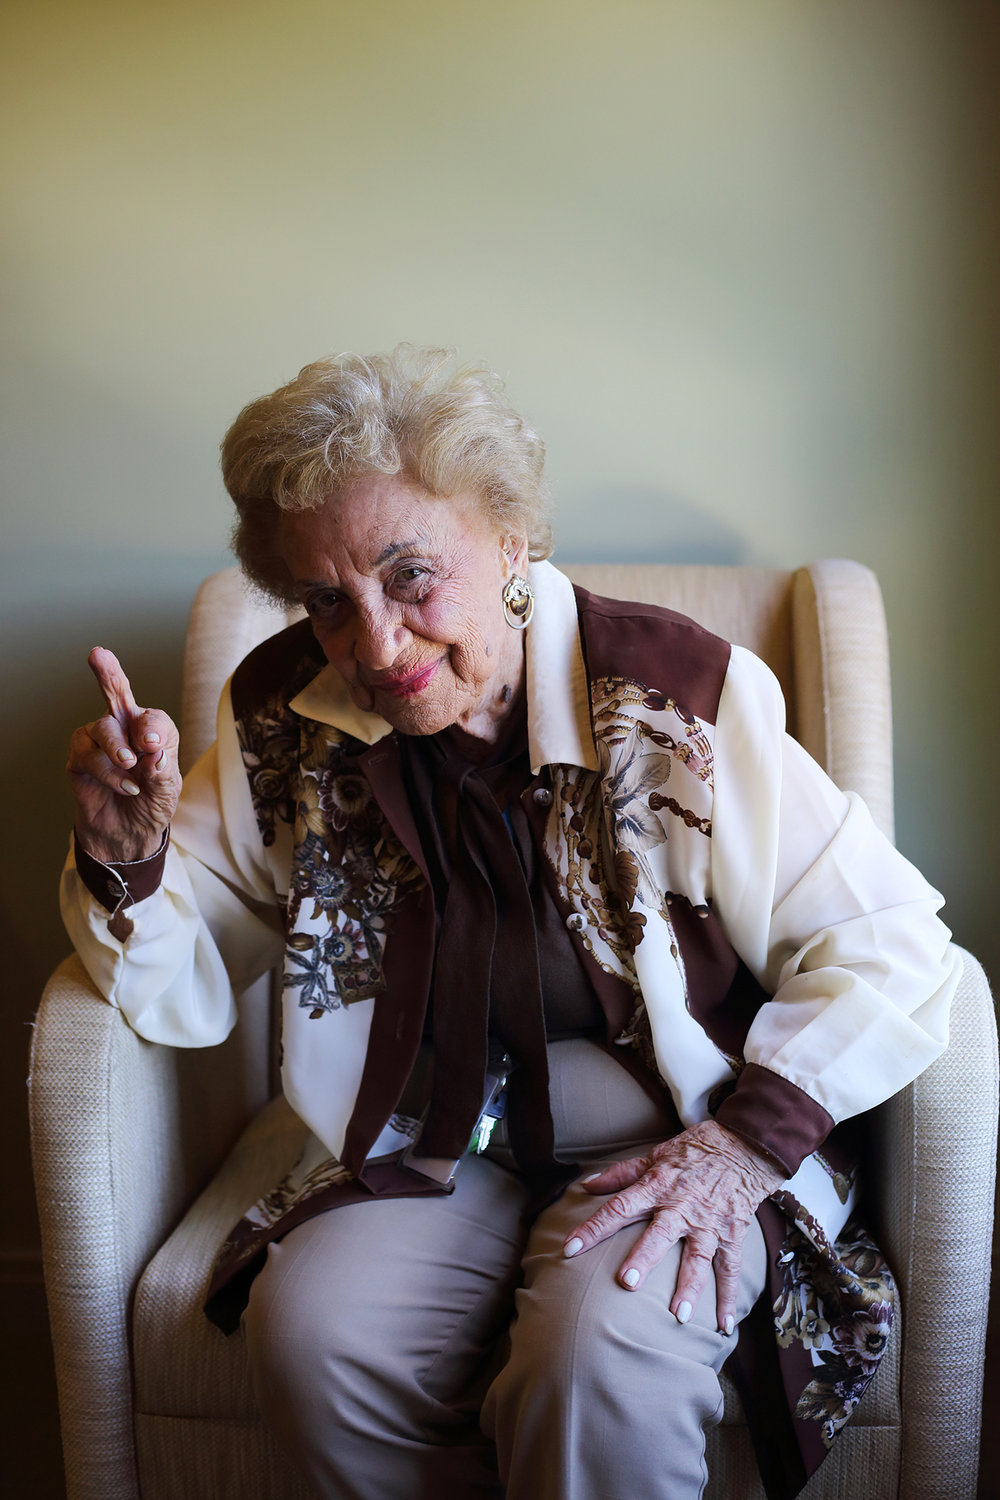 If 99-year-old Lena Goldstein could express one thing to Hitler, it would be to flip the bird. Growing up Jewish in Poland, her sense of humour helped her survive the Holocaust. On the night before she was certain she would die, she stayed up all night telling jokes to help keep her sanity. Without laughter, she would have given up hope or perished like many of her friends and family.